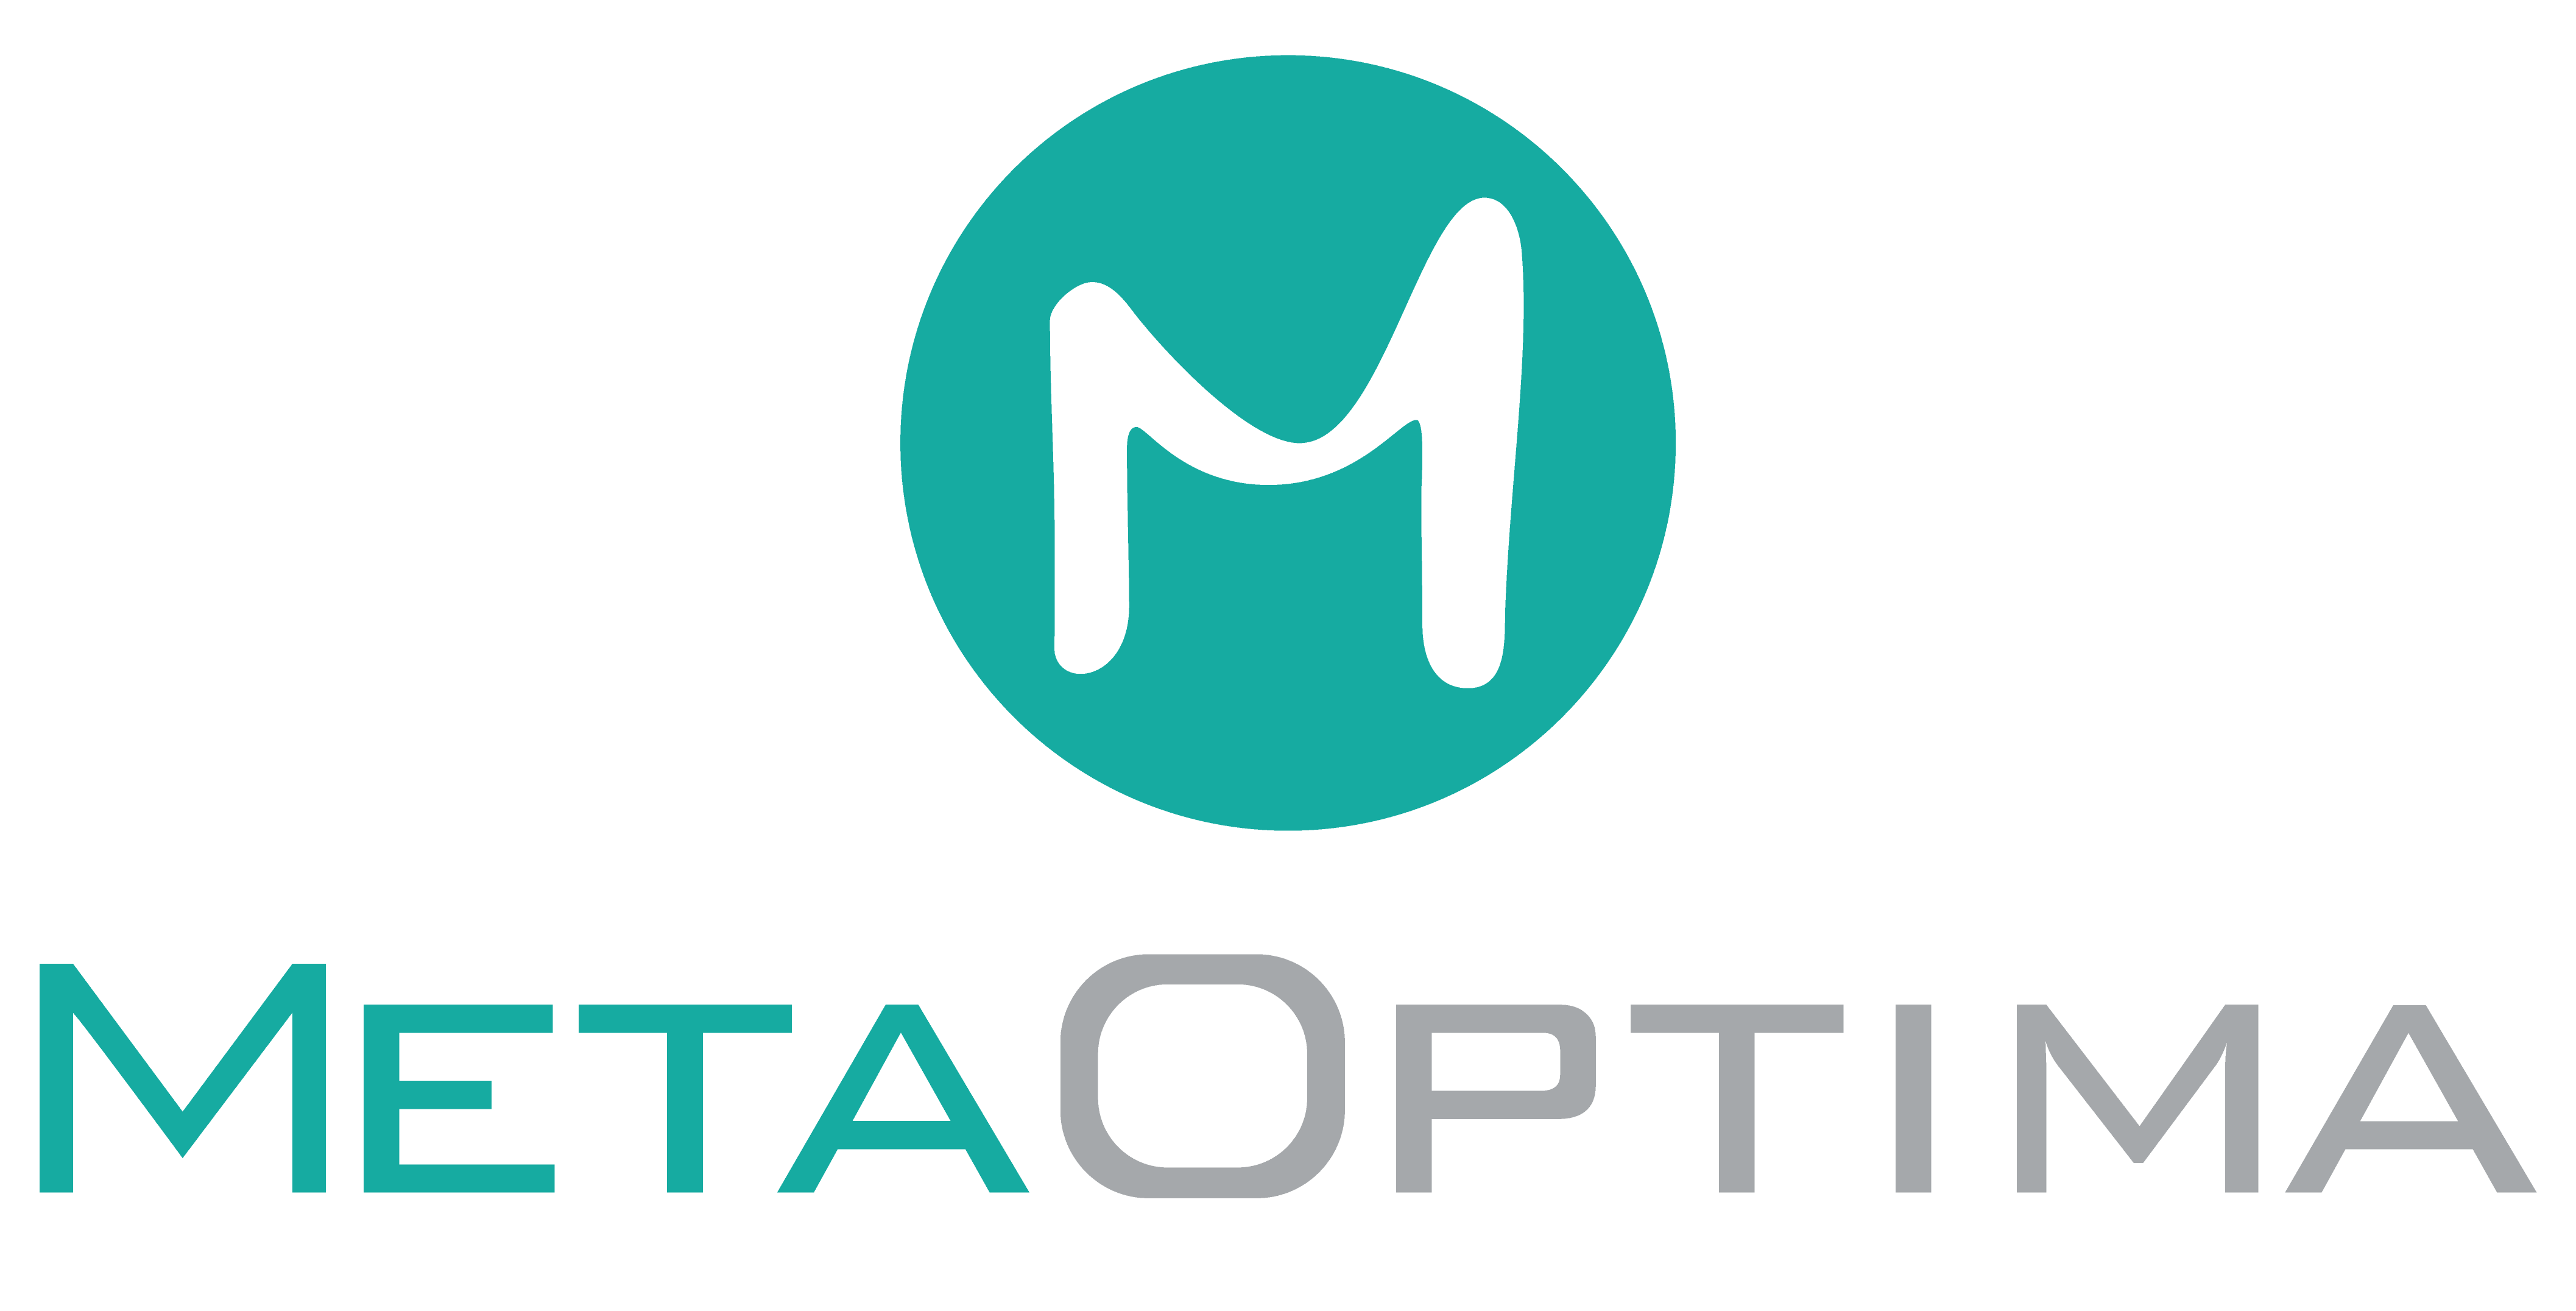 MetaOptima Logotype